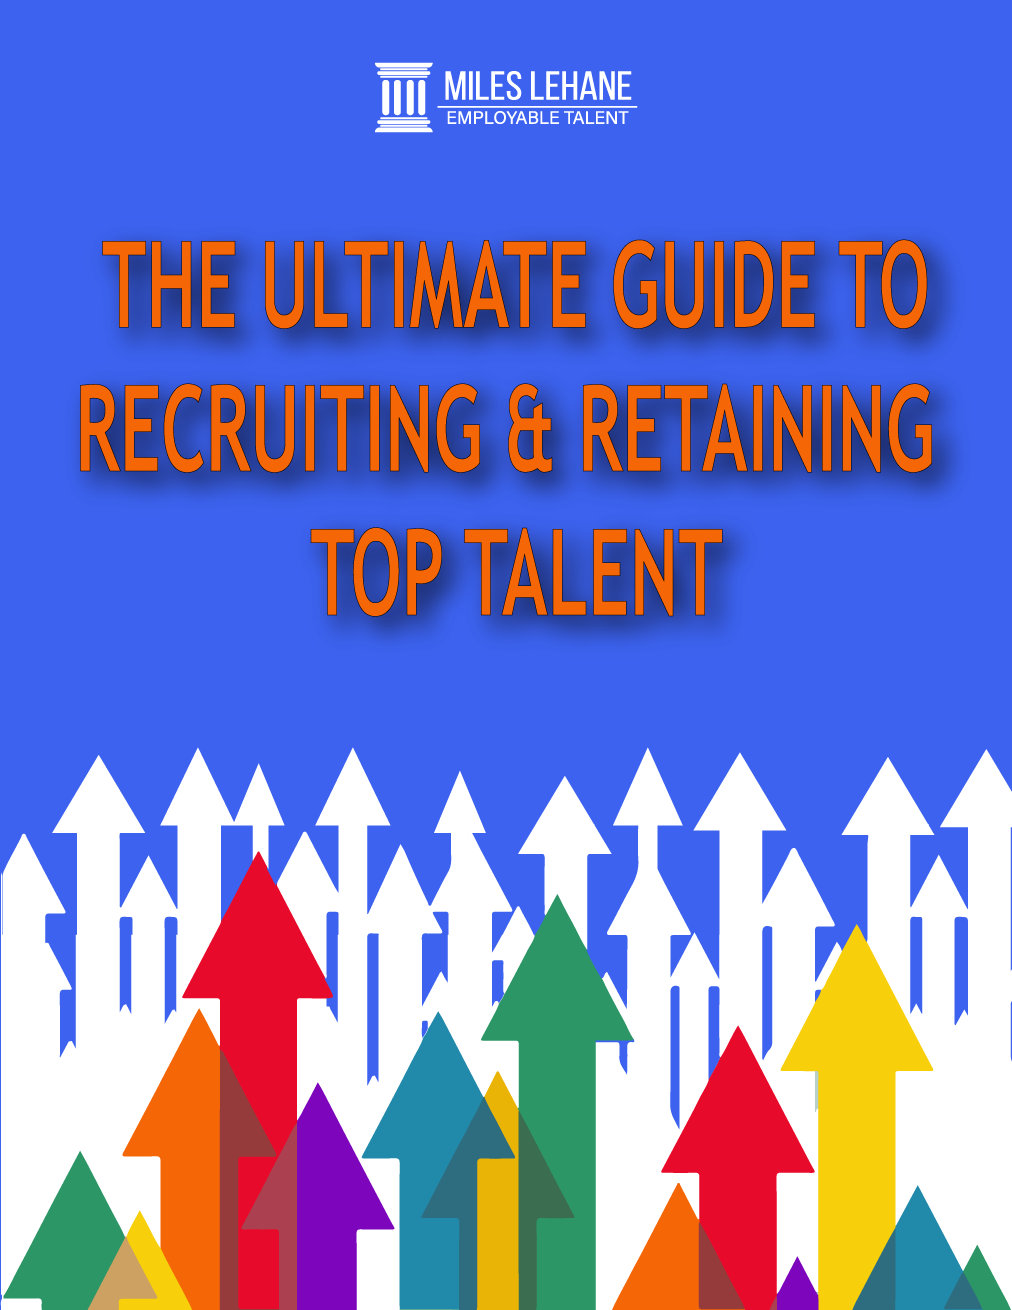 The Ultimate Guide to Recruiting & Retaining Top Talent cover